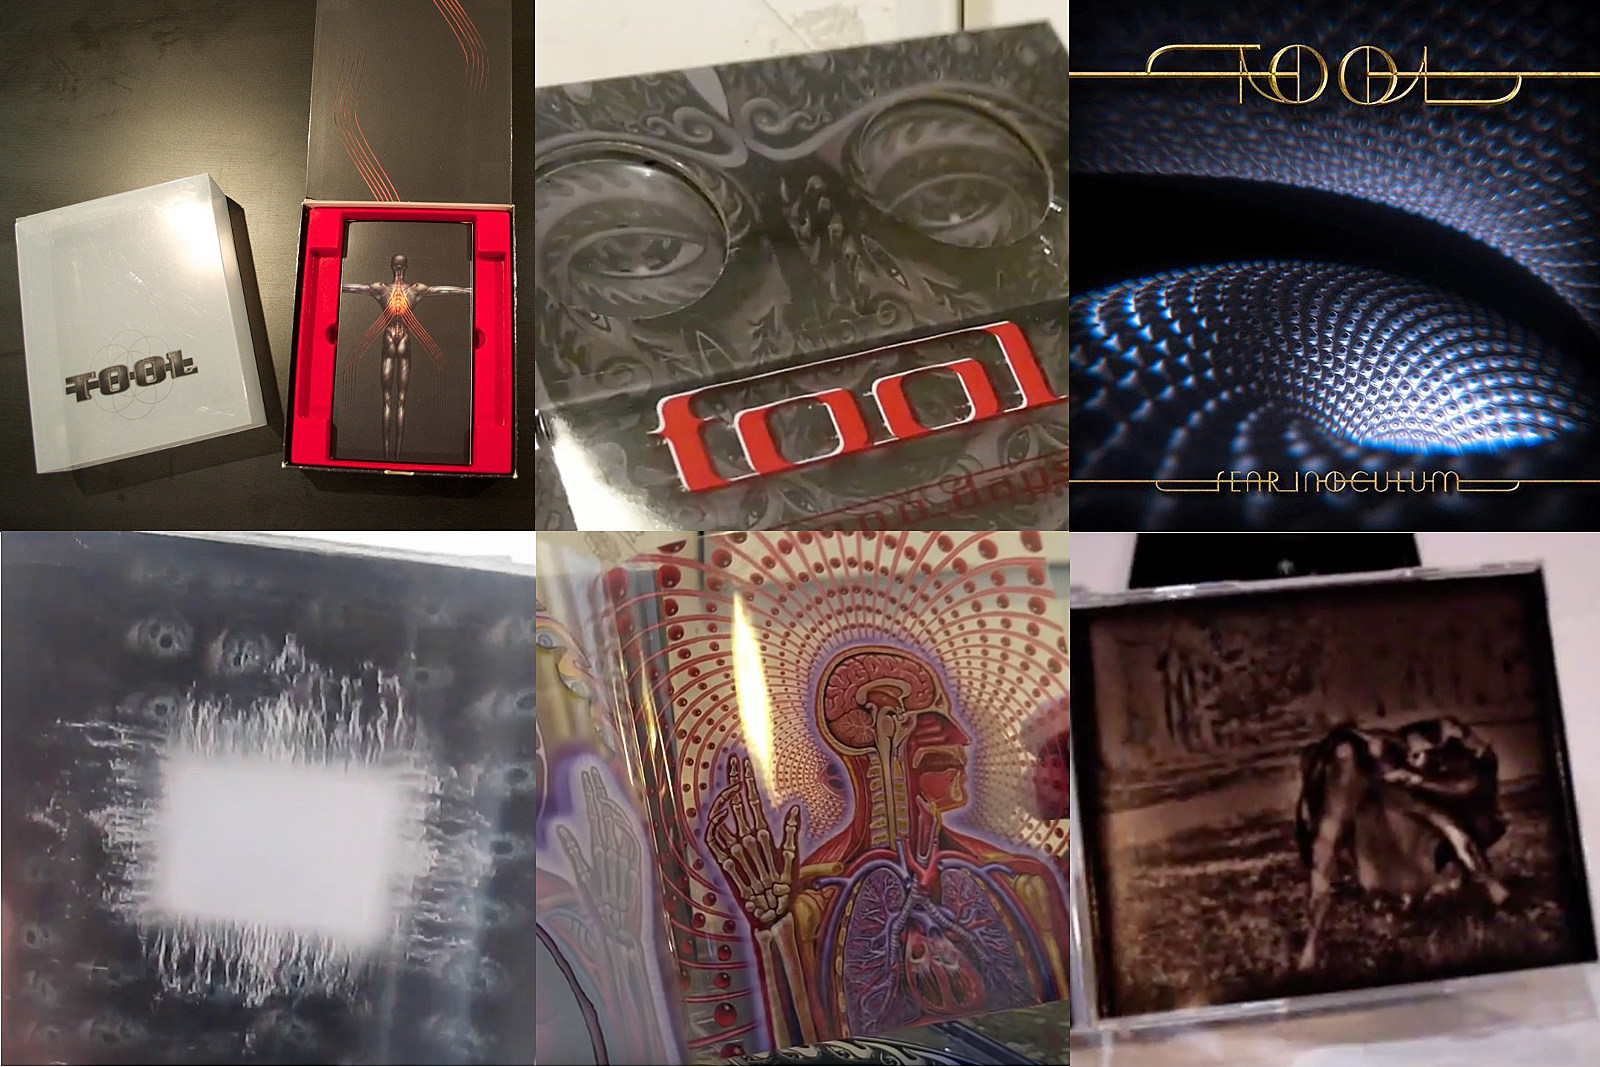 A History of Tool's Elaborate Album Packaging